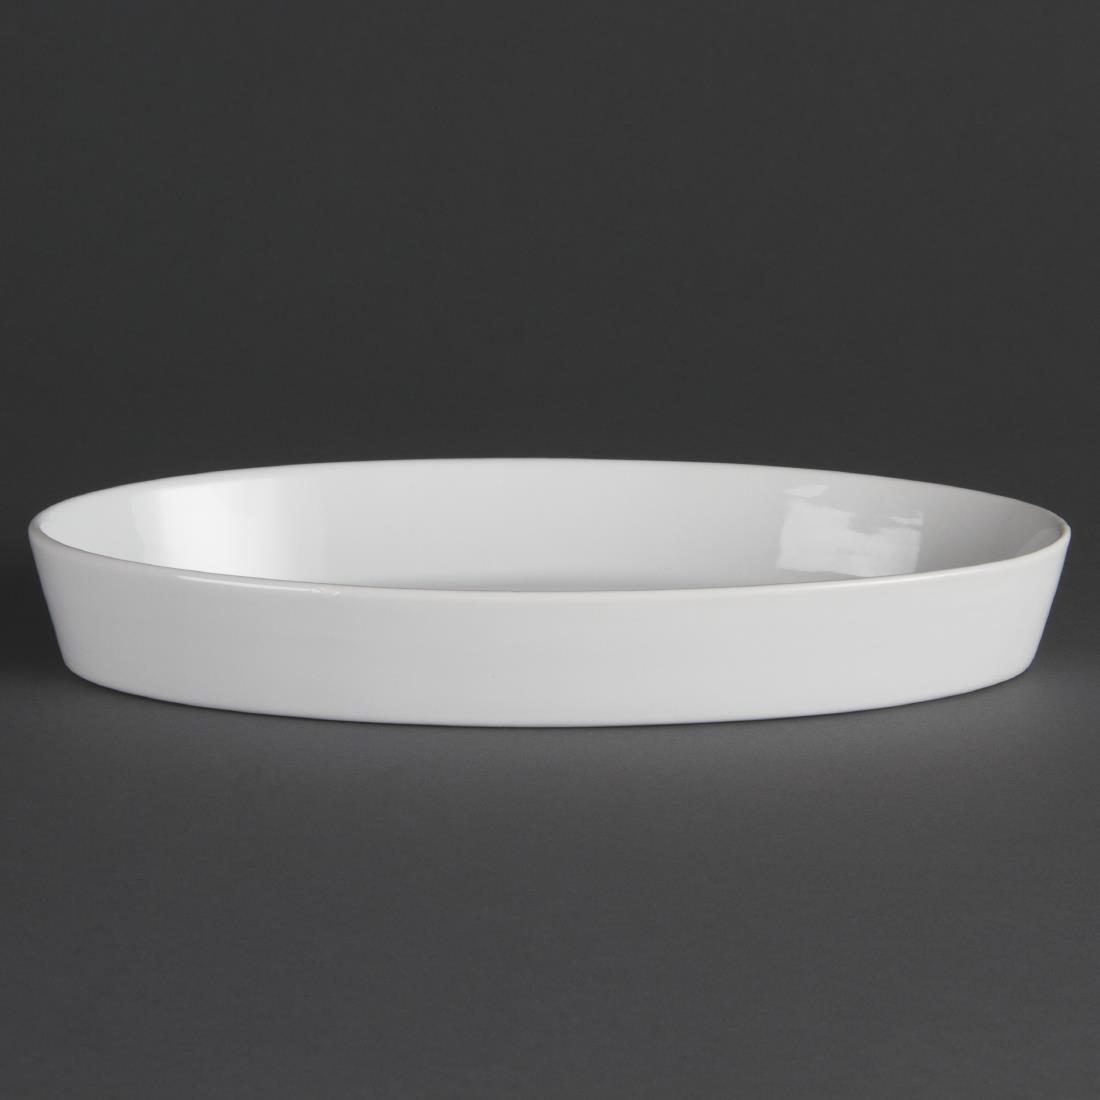 W409 - Olympia Whiteware Oval Sole Dish